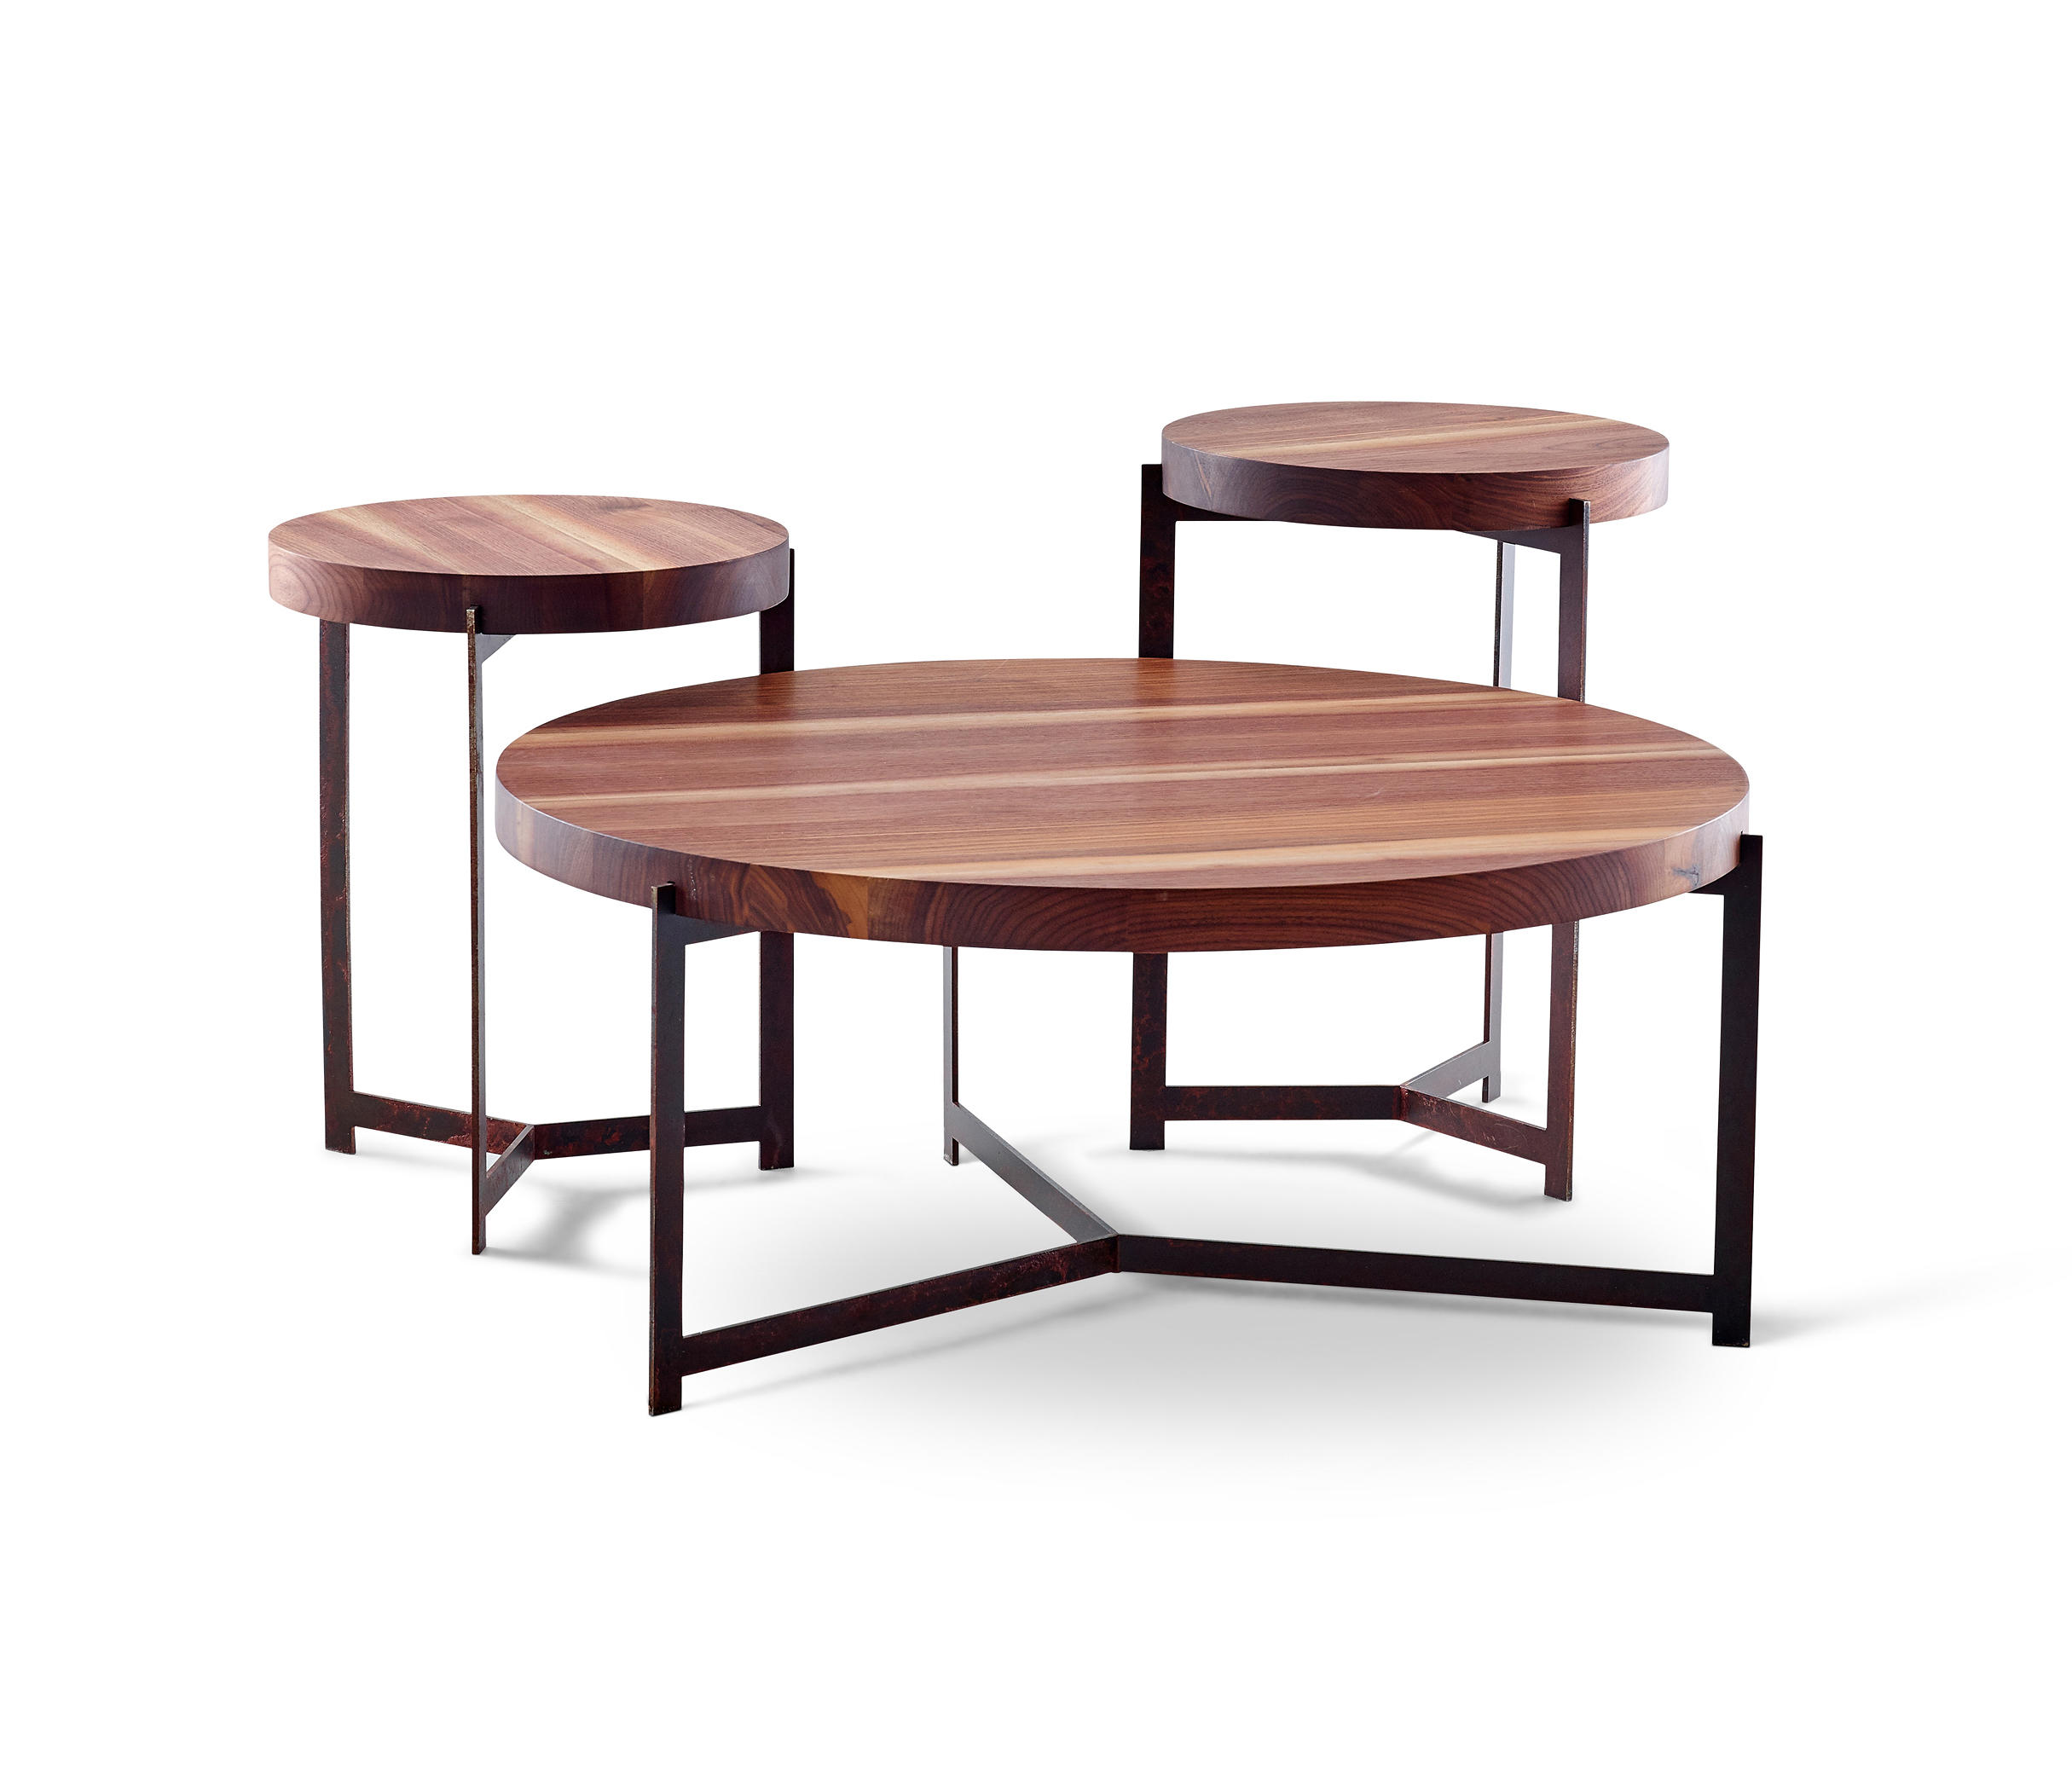 Tree Coffee Table Dk3: PLATEAU COFFEE- & SIDE TABLE